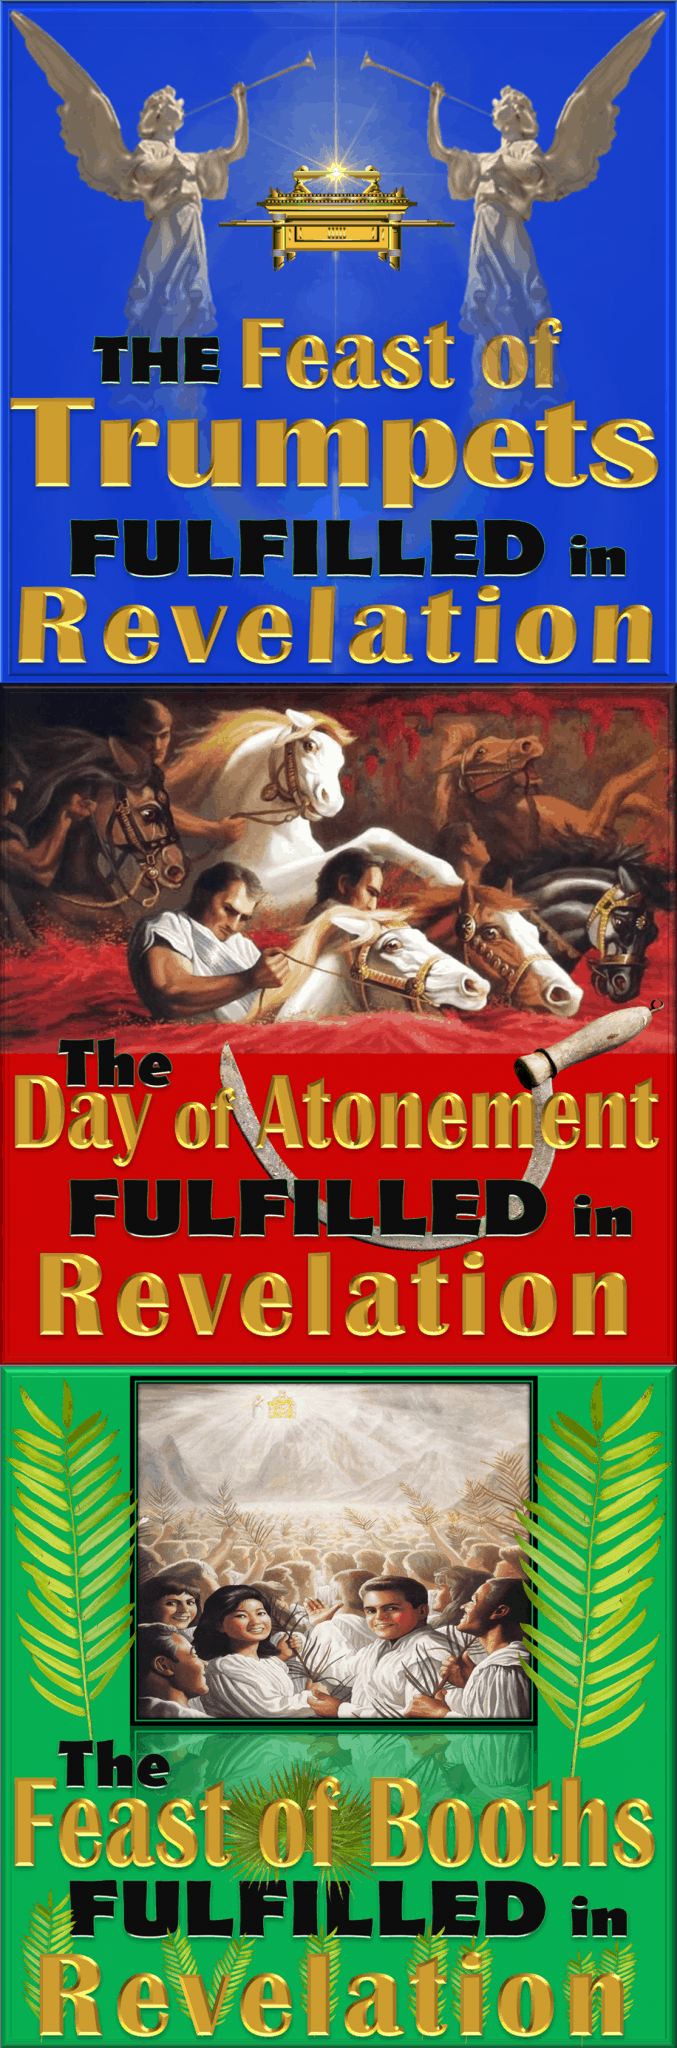 7 Seals,Book of Revelation,Seven Seals,First Seal,Second Seal,Third Seal,Fourth Seal,Fifth Seal,Sixth Seal,Seventh Seal,Revelation Chapter 4,Revelation Chapter 5,Revelation Chapter 6,Revelation Chapter 7,7 Trumpets,Seven Trumpets,First Trumpet,Second Trumpet,Third Trumpet,Fourth Trumpet,Fifth Trumpet,Sixth Trumpet,Seventh Trumpet,Book of Revelation,Picture Gallery,Album,Revelation Chapter 8,Revelation Chapter 9,Revelation Chapter 10,Revelation Chapter 11,Seven Vials of Wrath,7 Vials,7 Bowls,Seven Bowls,wrath,Picture Gallery,Book of Revelation,First Vial,Second Vial,Third Vial,Fourth Vial,Fifth Vial,Sixth Vial,Seventh Vial,Revelation Chapter 15,Revelation Chapter 16, Revelation Chapter 19,Armageddon,7 Bowls of Wrath,First Bowl,Second Bowl,Third Bowl,Fourth Bowl,Fifth Bowl,Sixth Bowl,Seventh Bowl,Feast of Atonement,Day of Atonement,Feast of Affliction,High Priest,Leviticus 23,Leviticus 16,Atonement,Cover,Remove,Purify,Refine,Cleanse,Blood,Atone,Yom Kippur,7 Feasts,Appointed Times,moed,Holy Day,YHWH,Rehearsal,Parallel with Revelation,Fulfillment in Revelation,Fulfilled,Connection,Harvest,7 Seals,7 Trumpets,7 Vials, Wrath,7 Bowls,Seven Seals,Seven Trumpets,Seven Vials,Book of Revelation,Revelation of Jesus Christ,Feast of Trumpets,Yom Teruah,Shouting,Blasting,Leviticus 23,Leviticus Chapter 23,7 Feasts,Seven Feasts,Appointed Times,Holy Convocation,Assembly,Revelation,Book of Revelation,Fulfillment,Fulfilled,Revelation of Jesus Christ,YHWH,Feast of Tabernacles,Feast of Ingathering,Moed,sukkot,Succot,booths,palm branches,celebration,8th Day,Eight Day,Sabbath,Rest,Feast of Booths,Ingathering,Tabernacle,Last Days,End Times,Bible Prophesy,Prophetic,prophet,prophesy,Bible,YHWH,Jehovah,Feast of Atonement,Day of Atonement,Feast of Affliction,Yom Kippur,Great Tribulation,Great Affliction,Blood,Sacrifice,Atone,cleanse,Purify,7 Seals,Book of Revelation,Seven Seals,First Seal,Second Seal,Third Seal,Fourth Seal,Fifth Seal,Sixth Seal,Seventh Seal,Revelation Chapter 4,Revelation Chapter 5,Revelation Chapter 6,Revelation Chapter 7,7 Trumpets,Seven Trumpets,First Trumpet,Second Trumpet,Third Trumpet,Fourth Trumpet,Fifth Trumpet,Sixth Trumpet,Seventh Trumpet,Book of Revelation,Picture Gallery,Album,Revelation Chapter 8,Revelation Chapter 9,Revelation Chapter 10,Revelation Chapter 11,Seven Vials of Wrath,7 Vials,7 Bowls,Seven Bowls,wrath,Picture Gallery,Book of Revelation,First Vial,Second Vial,Third Vial,Fourth Vial,Fifth Vial,Sixth Vial,Seventh Vial,Revelation Chapter 15,Revelation Chapter 16, Revelation Chapter 19,Armageddon,7 Bowls of Wrath,First Bowl,Second Bowl,Third Bowl,Fourth Bowl,Fifth Bowl,Sixth Bowl,Seventh Bowl,Feast of Atonement,Day of Atonement,Feast of Affliction,High Priest,Leviticus 23,Leviticus 16,Atonement,Cover,Remove,Purify,Refine,Cleanse,Blood,Atone,Yom Kippur,7 Feasts,Appointed Times,moed,Holy Day,YHWH,Rehearsal,Parallel with Revelation,Fulfillment in Revelation,Fulfilled,Connection,Harvest,7 Seals,7 Trumpets,7 Vials, Wrath,7 Bowls,Seven Seals,Seven Trumpets,Seven Vials,Book of Revelation,Revelation of Jesus Christ,Feast of Trumpets,Yom Teruah,Shouting,Blasting,Leviticus 23,Leviticus Chapter 23,7 Feasts,Seven Feasts,Appointed Times,Holy Convocation,Assembly,Revelation,Book of Revelation,Fulfillment,Fulfilled,Revelation of Jesus Christ,YHWH,Feast of Tabernacles,Feast of Ingathering,Moed,sukkot,Succot,booths,palm branches,celebration,8th Day,Eight Day,Sabbath,Rest,Feast of Booths,Ingathering,Tabernacle,Last Days,End Times,Bible Prophesy,Prophetic,prophet,prophesy,Bible,YHWH,Jehovah,Feast of Atonement,Day of Atonement,Feast of Affliction,Yom Kippur,Great Tribulation,Great Affliction,Blood,Sacrifice,Atone,cleanse,Purify,7-bowls, 7-bowls-of-wrath, 7-feasts, 7-seals, 7-trumpets, 7-vials, 8th-day, album, appointed-times, armageddon, assembly, atone, atonement, bible, bible-prophesy, blasting, blood, book-of-revelation, booths, celebration, cleanse, connection, cover, day-of-atonement, eight-day, end-times, feast-of-affliction, feast-of-atonement, feast-of-booths, feast-of-ingathering, feast-of-tabernacles, feast-of-trumpets, fifth-bowl, fifth-seal, fifth-trumpet, fifth-vial, first-bowl, first-seal, first-trumpet, first-vial, fourth-bowl, fourth-seal, fourth-trumpet, fourth-vial, fulfilled, fulfillment, fulfillment-in-revelation, great-affliction, great-tribulation, harvest, high-priest, holy-convocation, holy-day, ingathering, jehovah, last-days, leviticus-16, leviticus-23, leviticus-chapter-23, moed, palm-branches, parallel-with-revelation, picture-gallery, prophesy, prophet, prophetic, purify, refine, rehearsal, remove, rest, revelation, revelation-chapter-10, revelation-chapter-11, revelation-chapter-15, revelation-chapter-16, revelation-chapter-19, revelation-chapter-4, revelation-chapter-5, revelation-chapter-6, revelation-chapter-7, revelation-chapter-8, revelation-chapter-9, revelation-of-jesus-christ, sabbath, sacrifice, second-bowl, second-seal, second-trumpet, second-vial, seven-bowls, seven-feasts, seven-seals, seven-trumpets, seven-vials, seven-vials-of-wrath, seventh-bowl, seventh-seal, seventh-trumpet, seventh-vial, shouting, sixth-bowl, sixth-seal, sixth-trumpet, sixth-vial, succot, sukkot, tabernacle, third-bowl, third-seal, third-trumpet, third-vial, wrath, yhwh, yom-kippur, yom-teruah